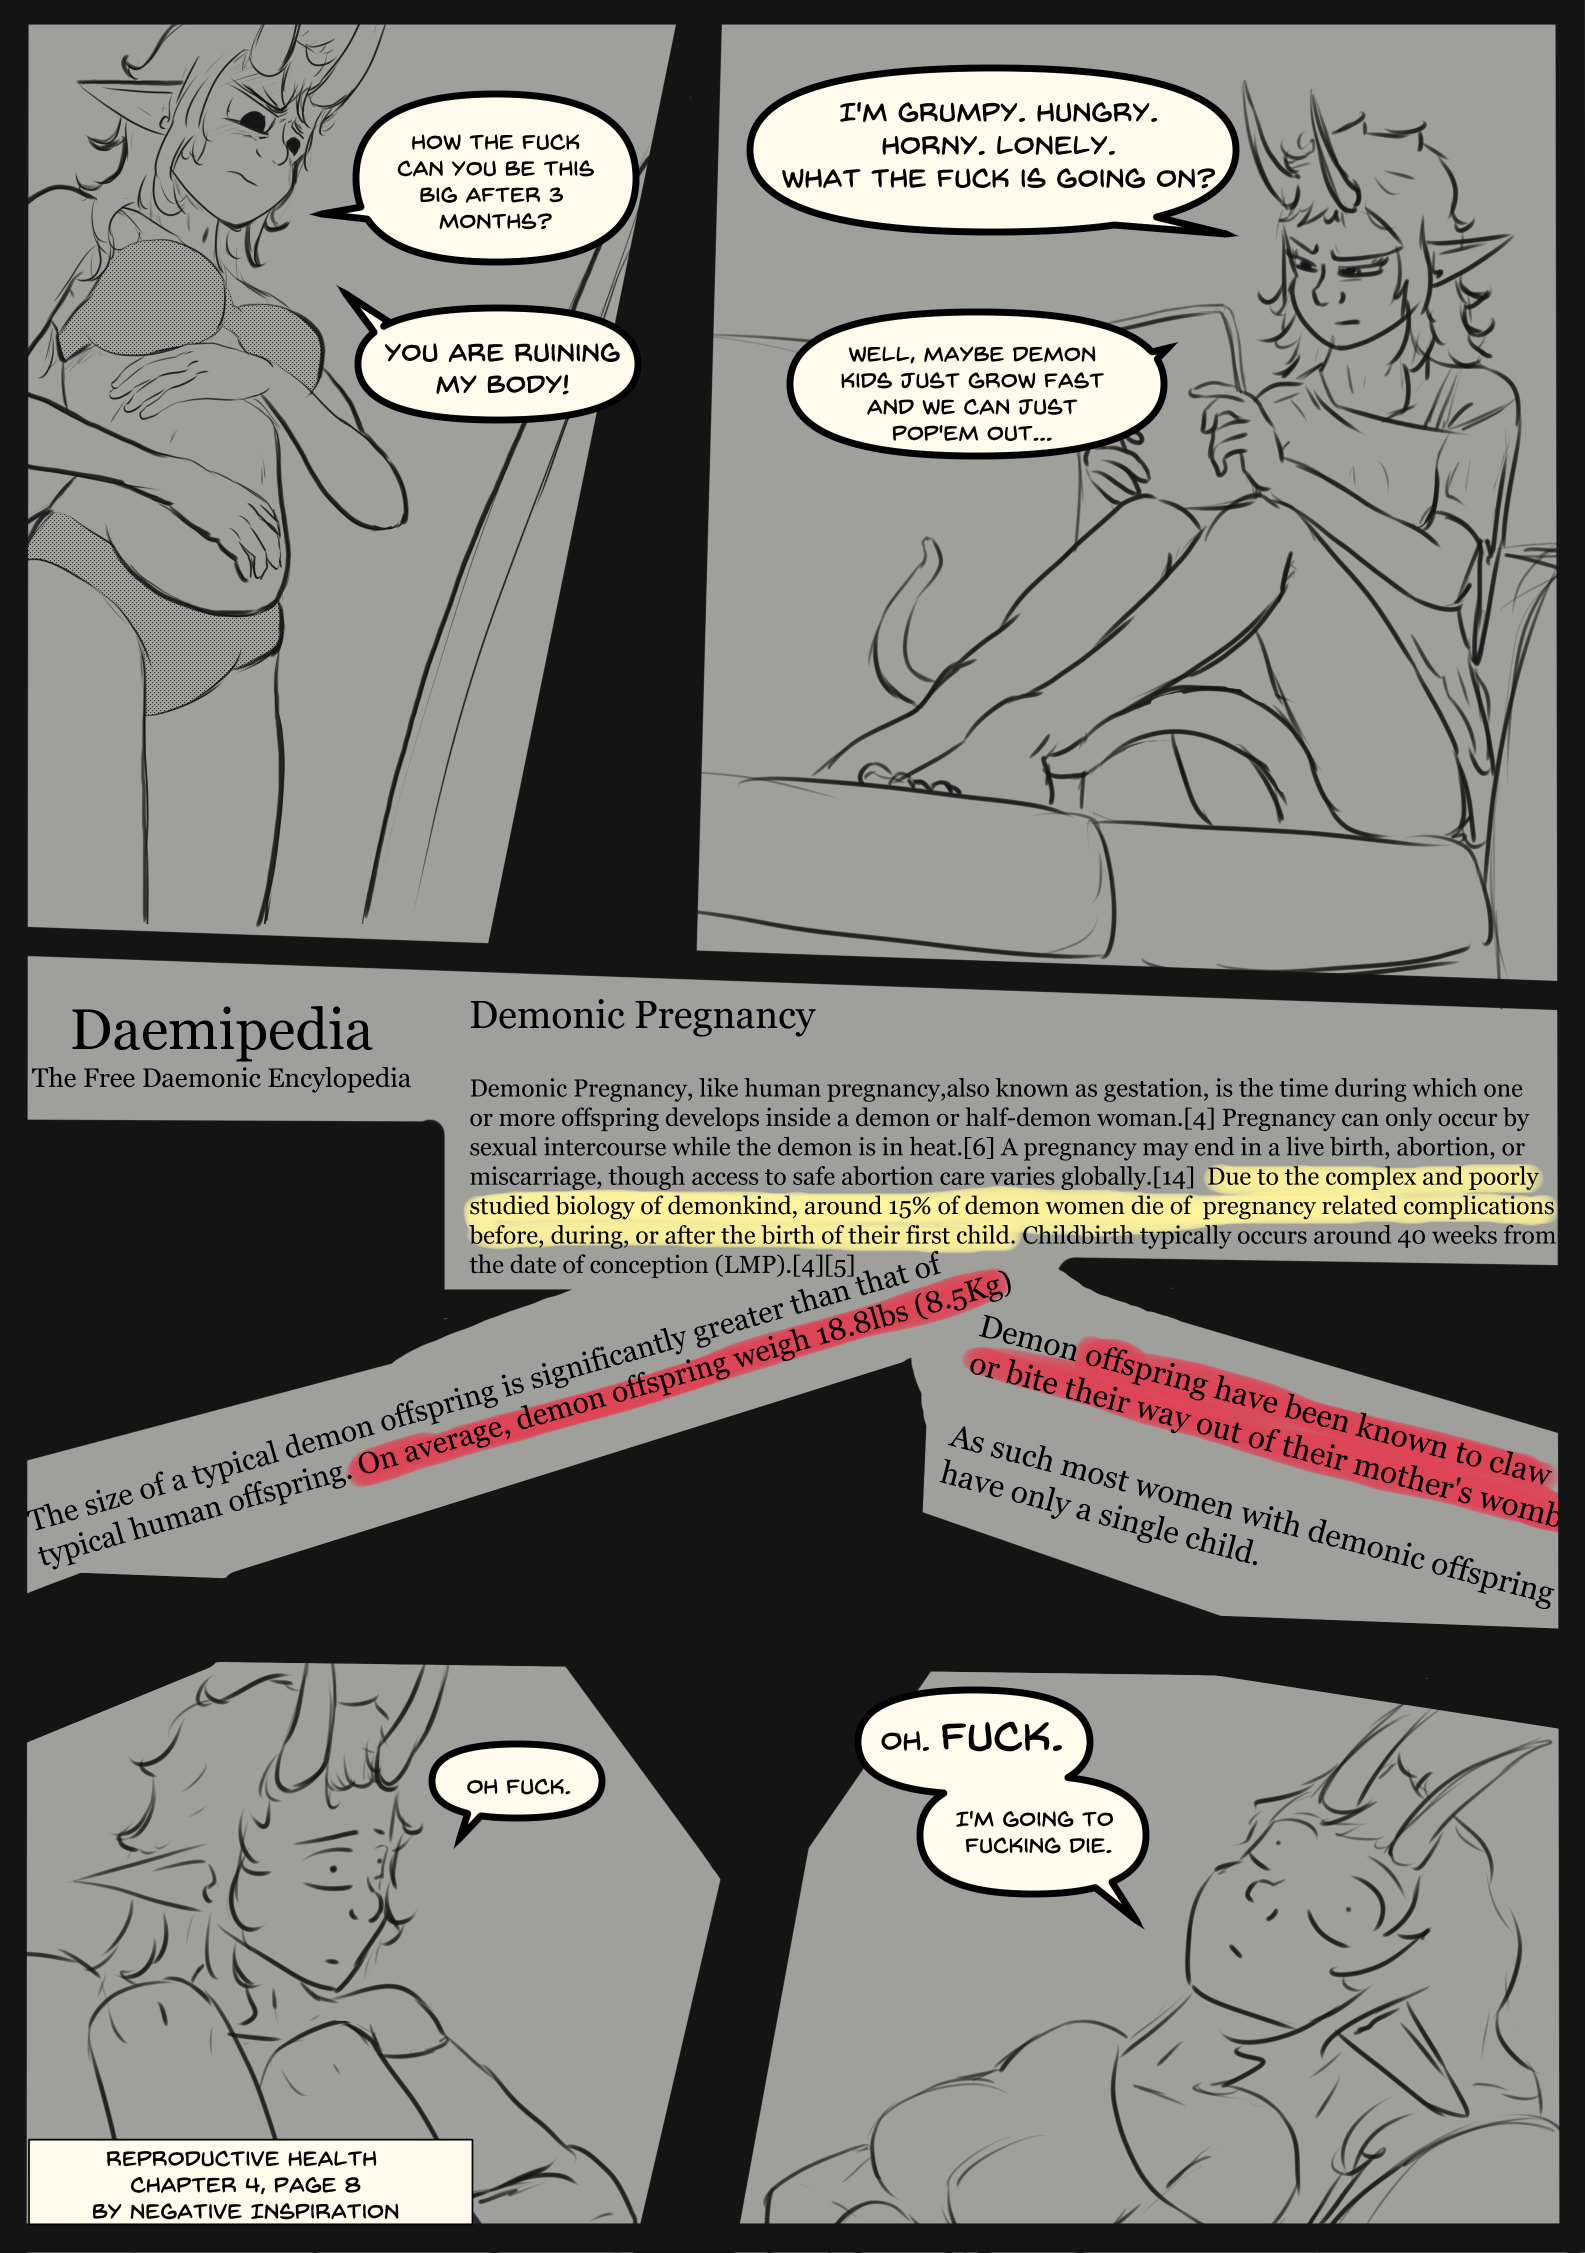 Reproductive Health: Chapter 4, Page 08